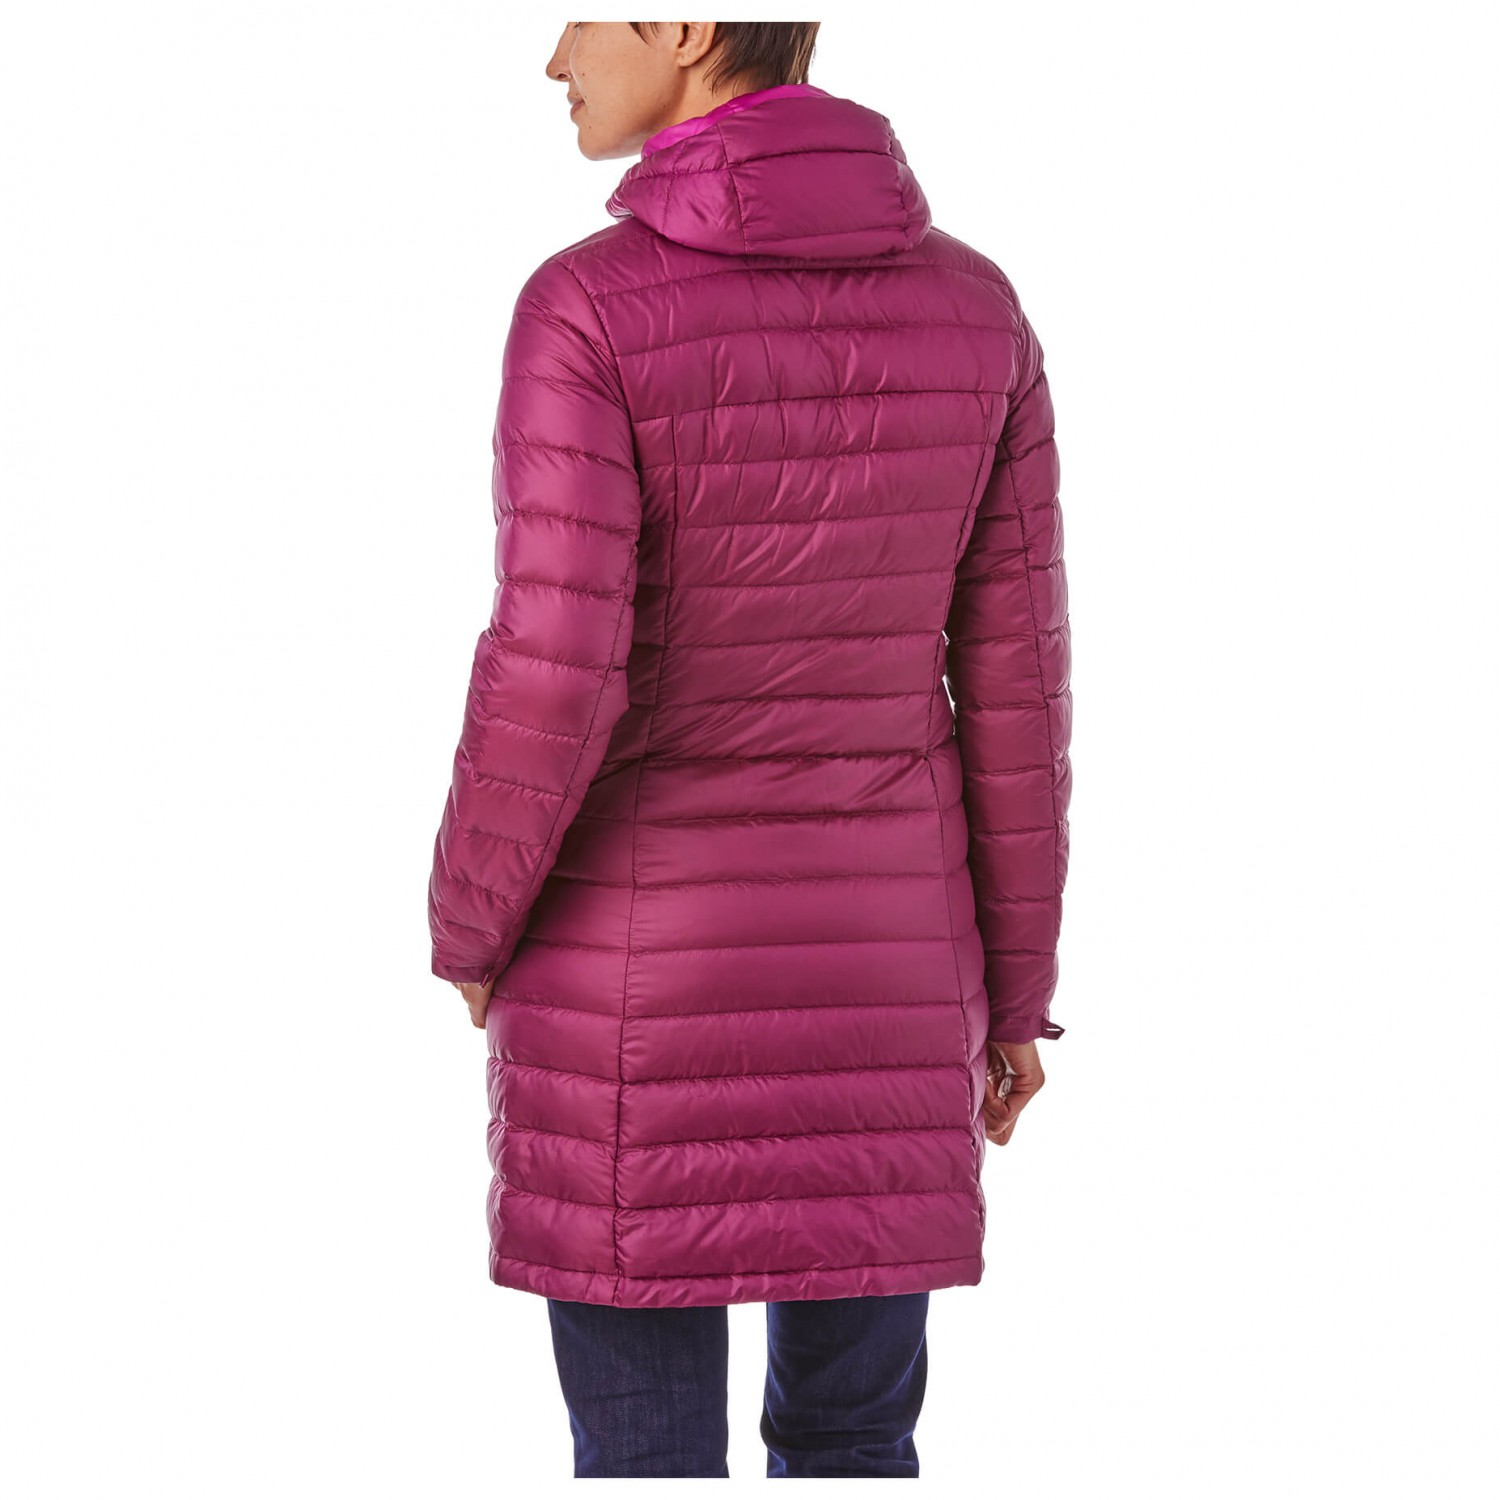 6ec7cb00acf Patagonia Hooded Fiona Parka - Coat Women's | Buy online ...